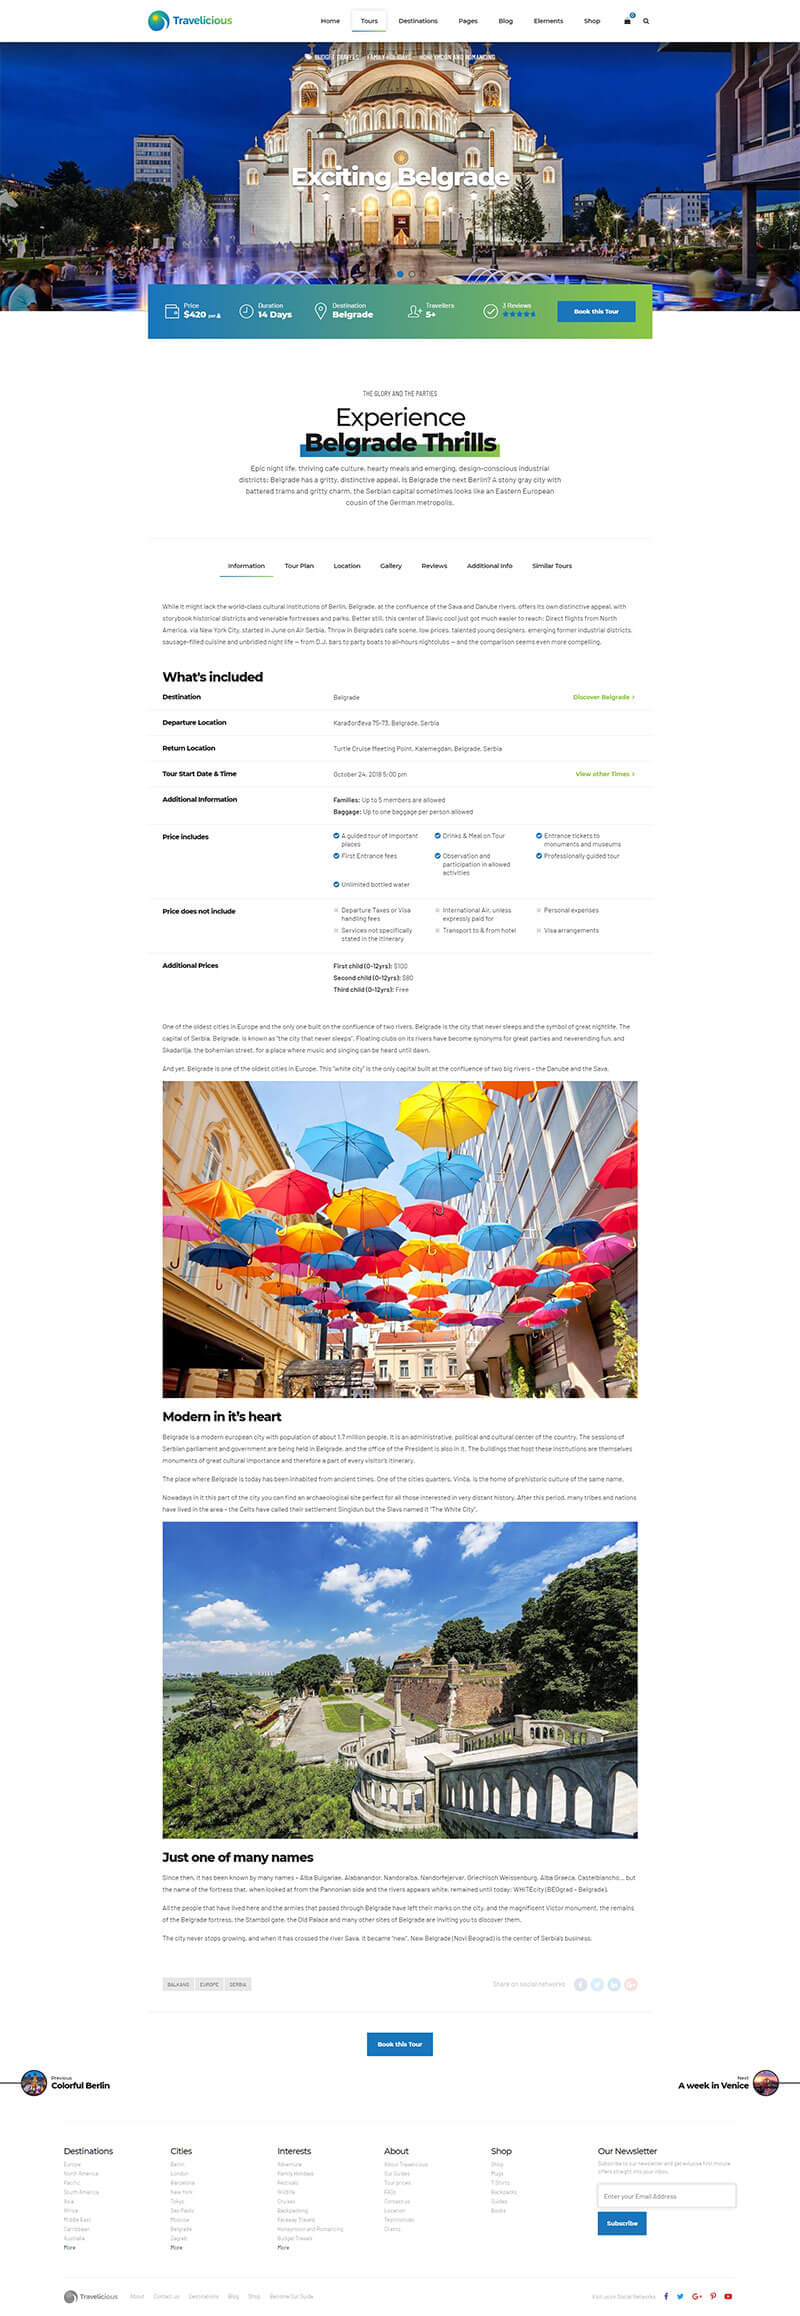 https://travelicious.bold-themes.com/wp-content/uploads/2018/10/page-tour-slider.jpg